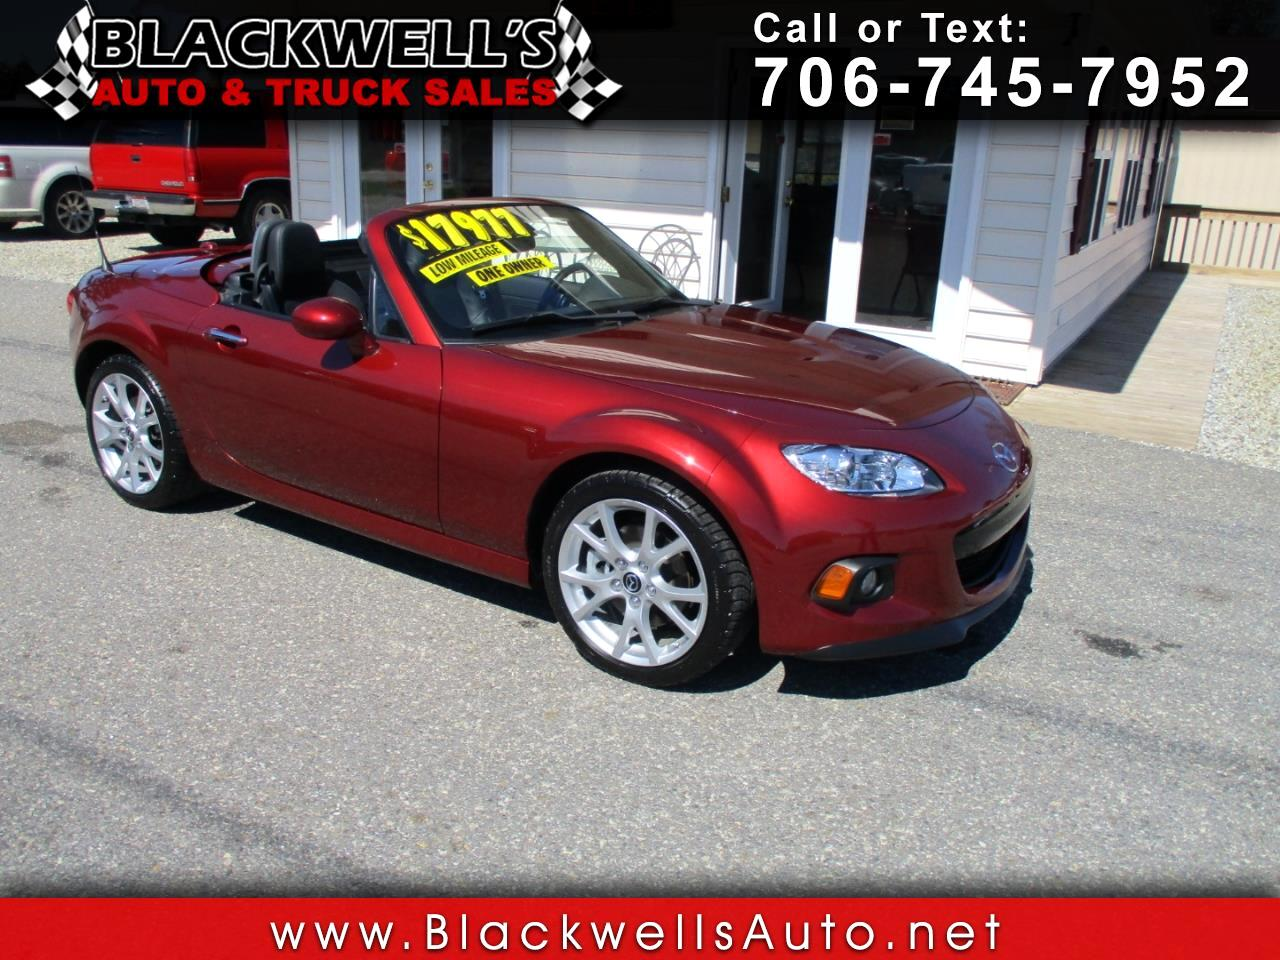 2013 Mazda MX-5 Miata 2dr Conv Hard Top Man Grand Touring